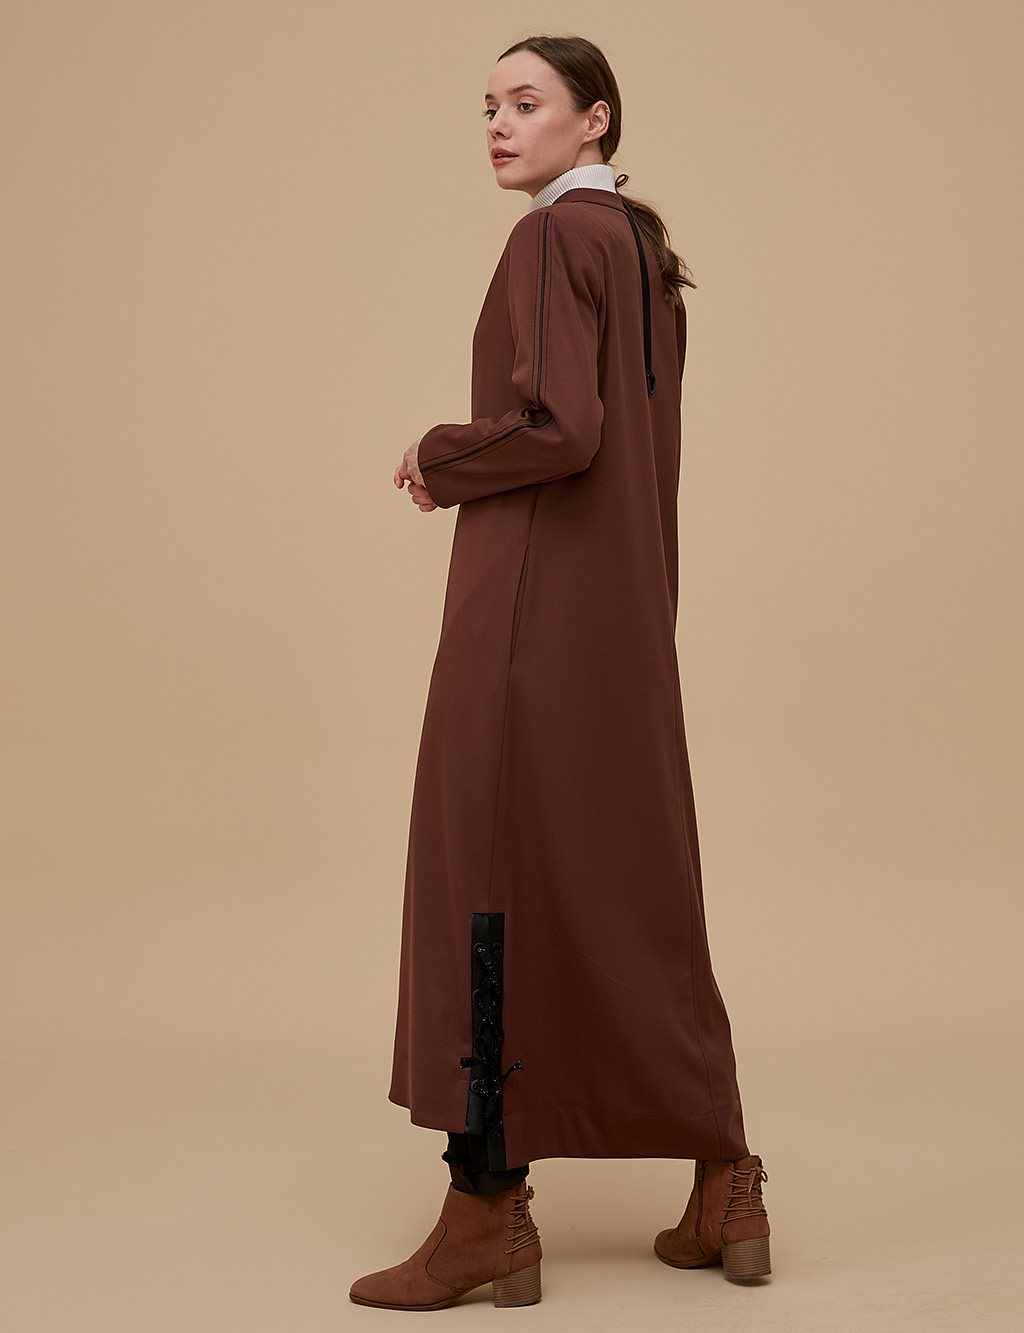 Ruched Detailed Coat A9 17052 Cinnamon